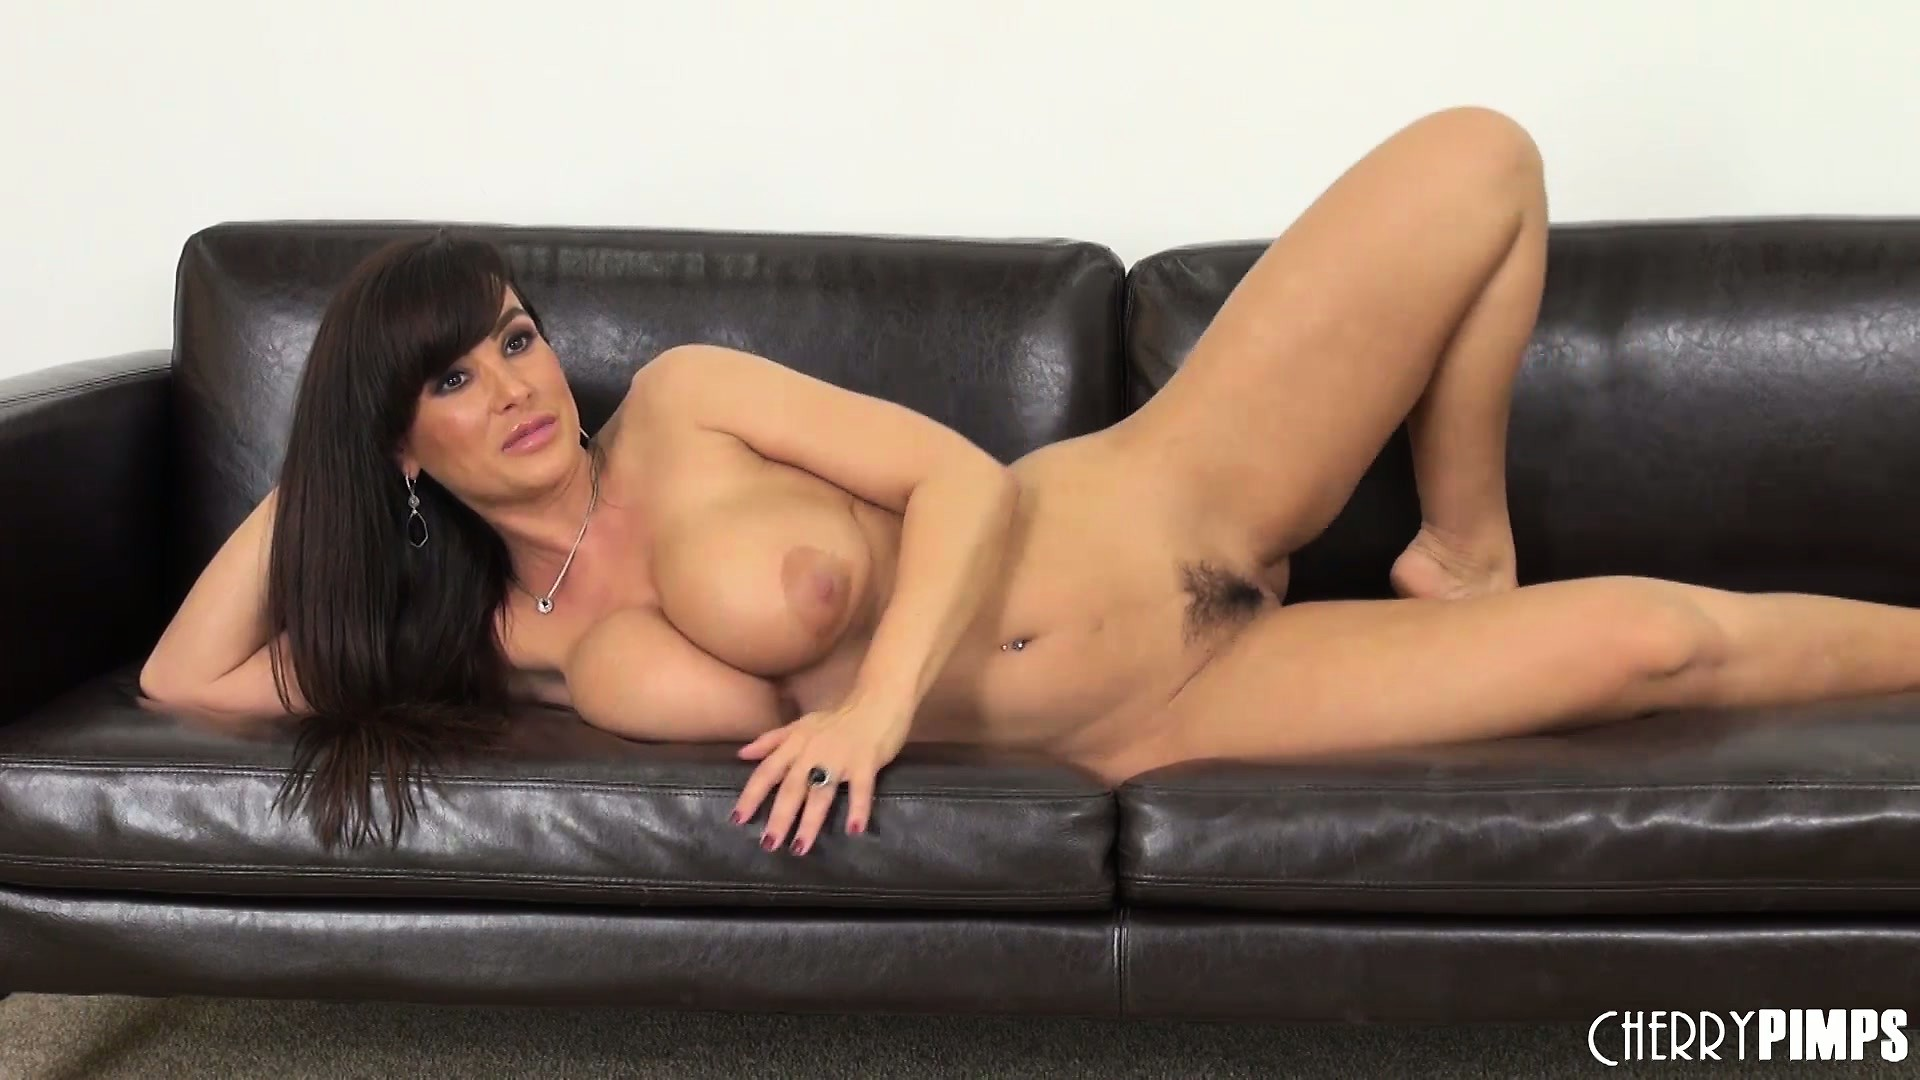 Porno Video of Lisa Ann Gets On The Floor To Toy And Back On The Couch To Pose